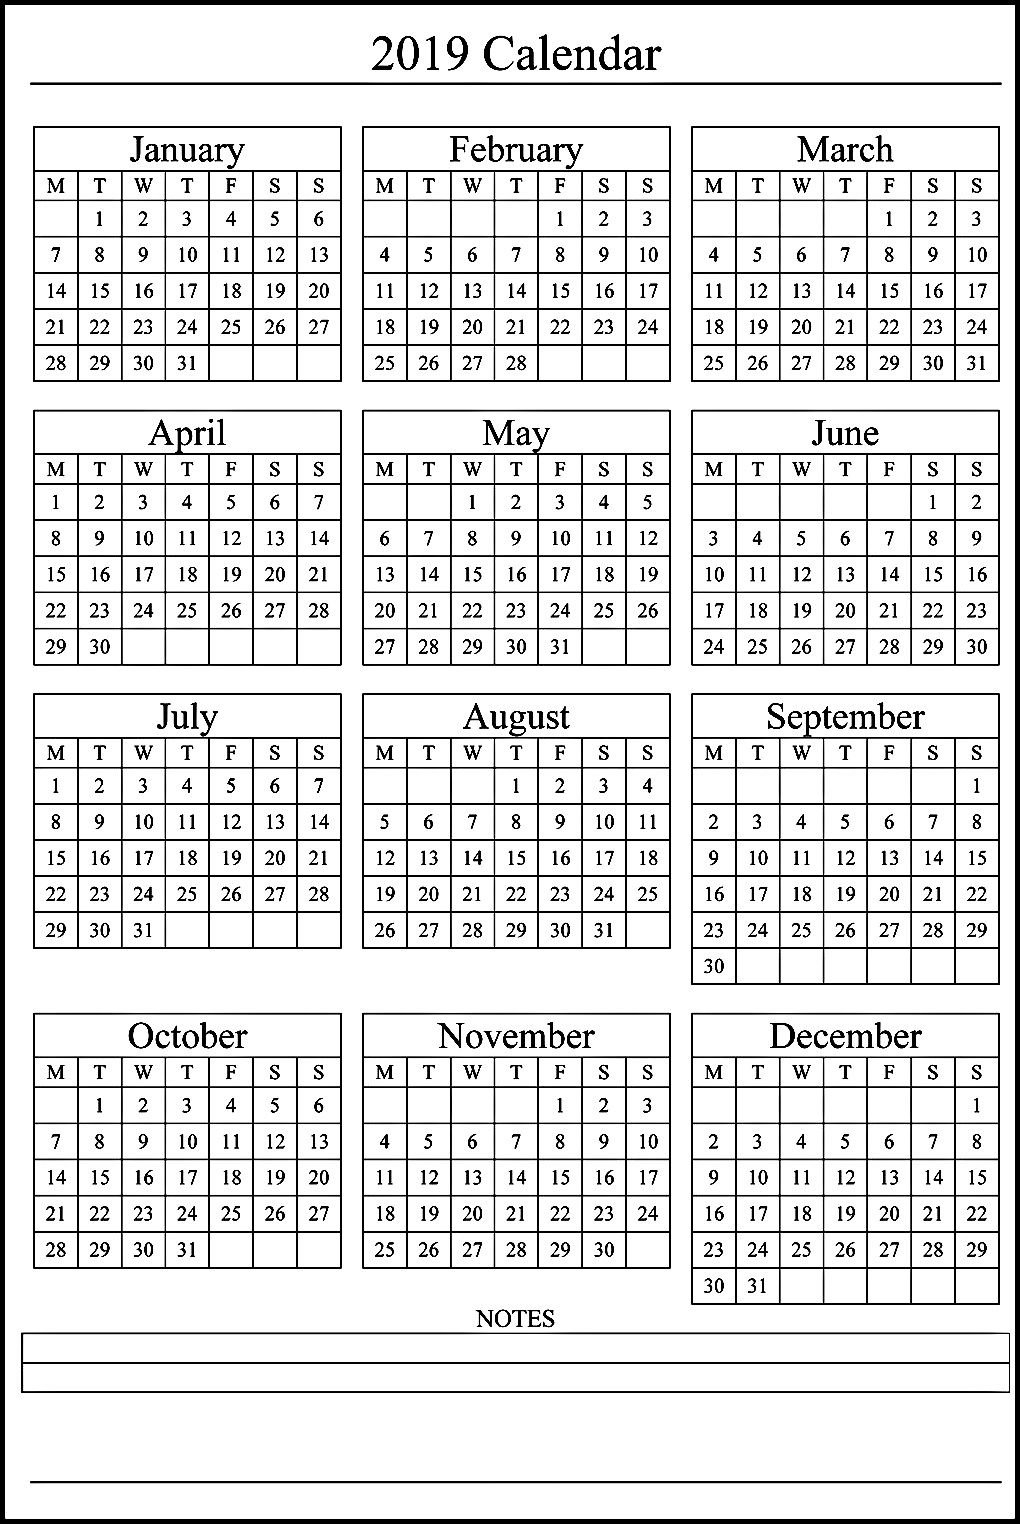 3 Month On One Page Printable – Calendar Inspiration Design Applications To Print 3Month Calendars